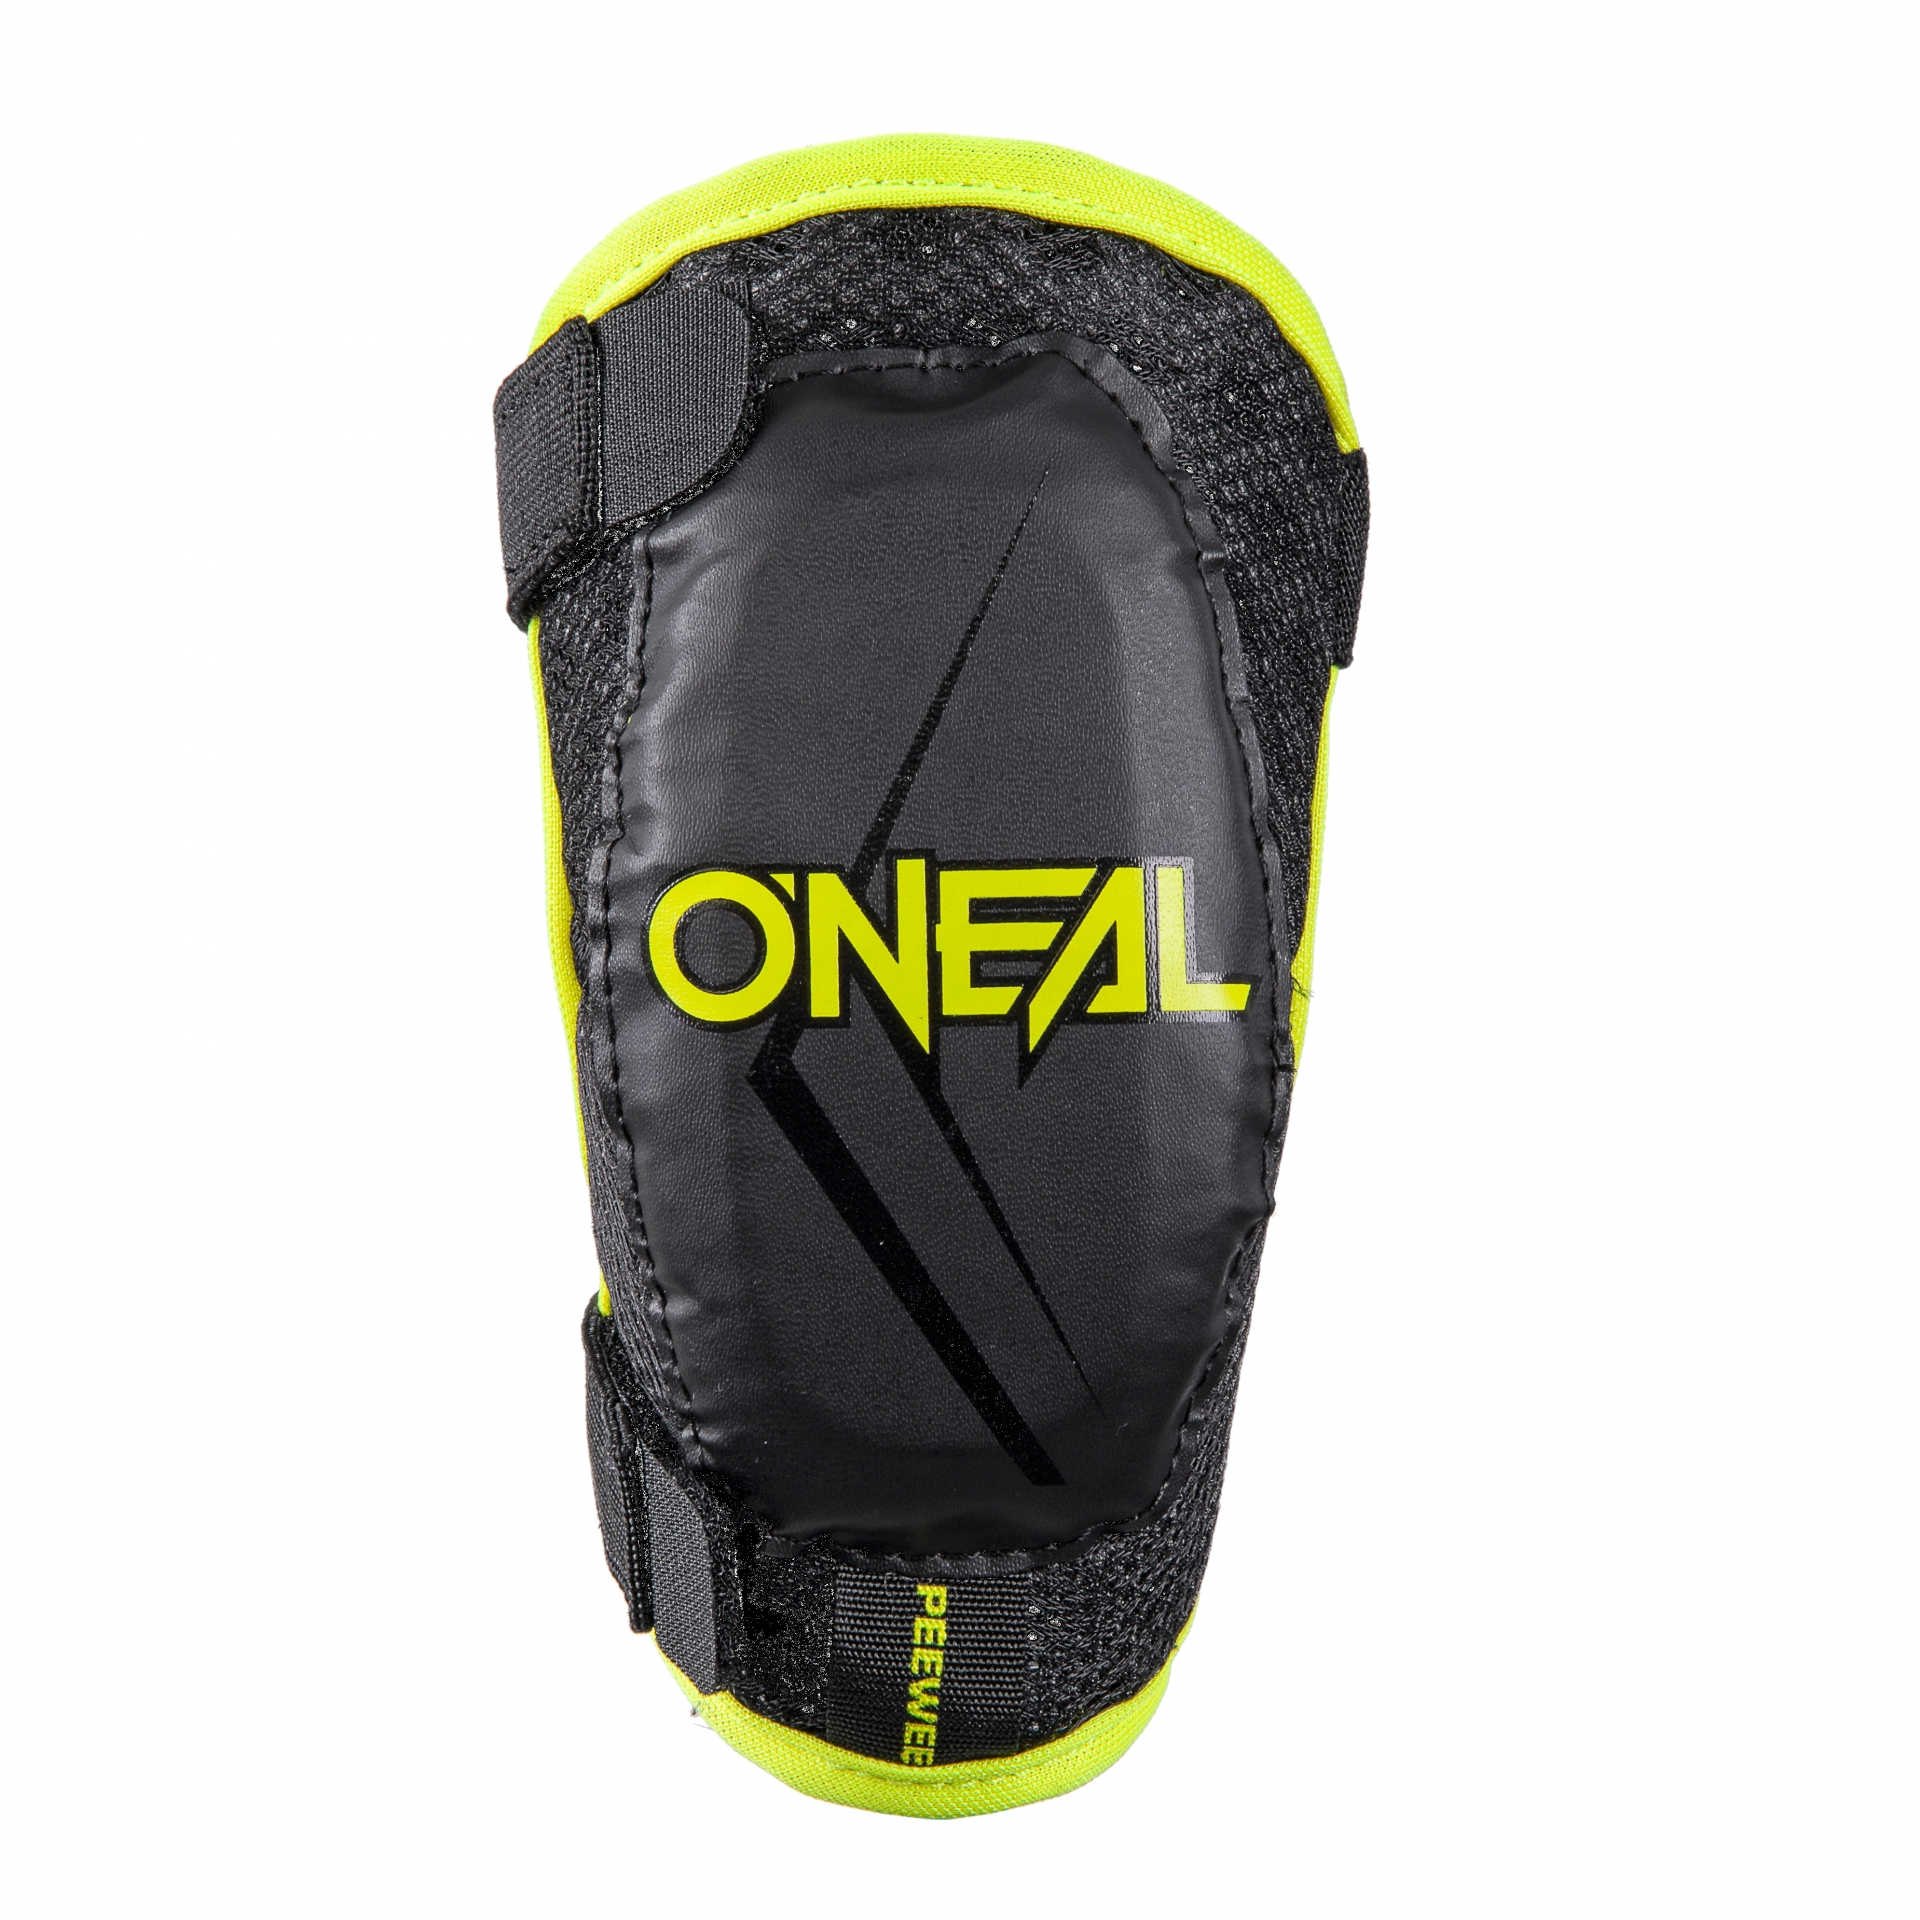 Coudières O'Neal Peewee Elbow Guard Neon Jaune - M/L